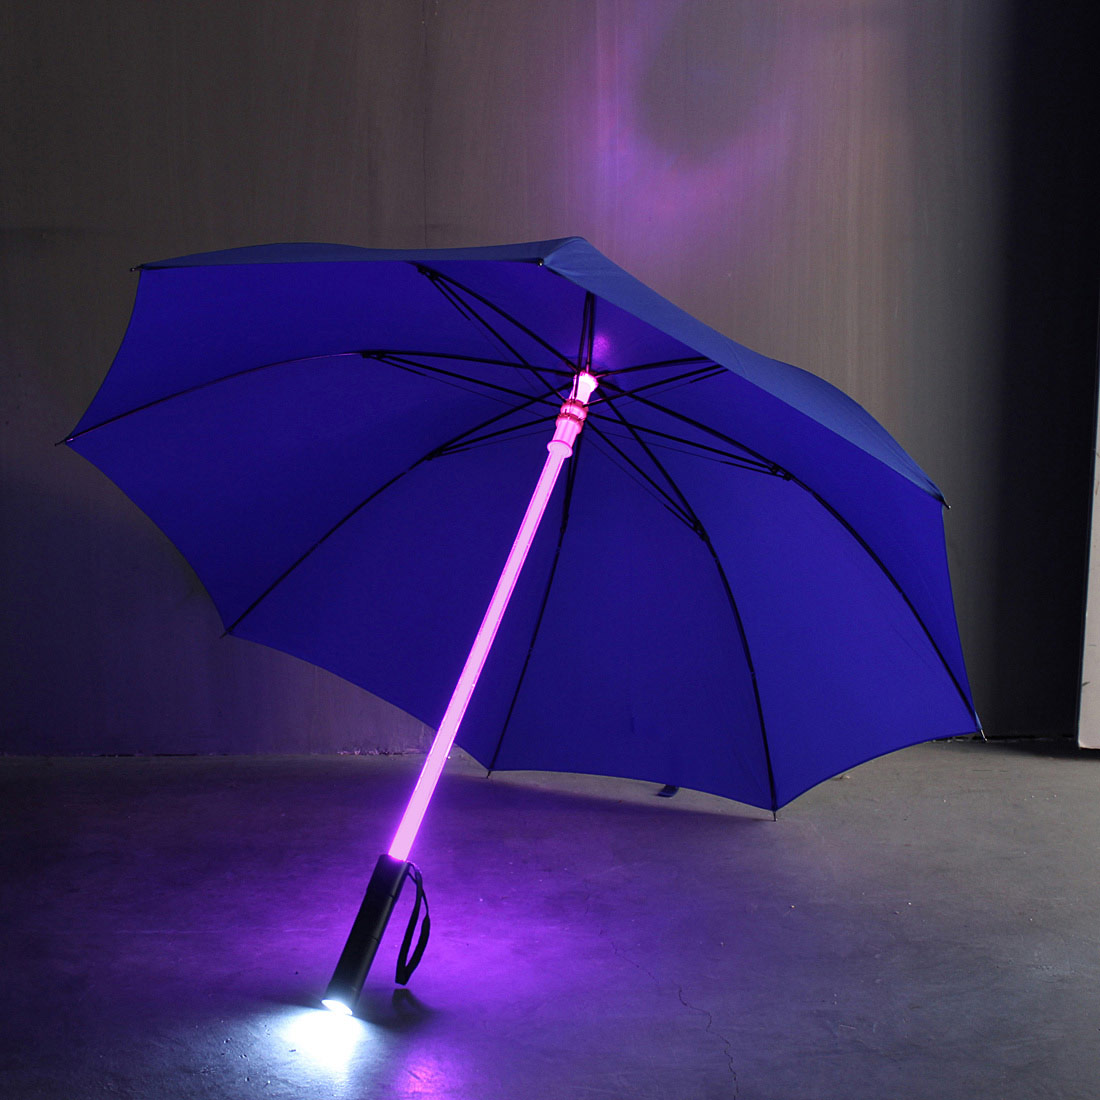 Blue Led Umbrella: LED Flash Light Cool Luminous Umbrella Handle Night